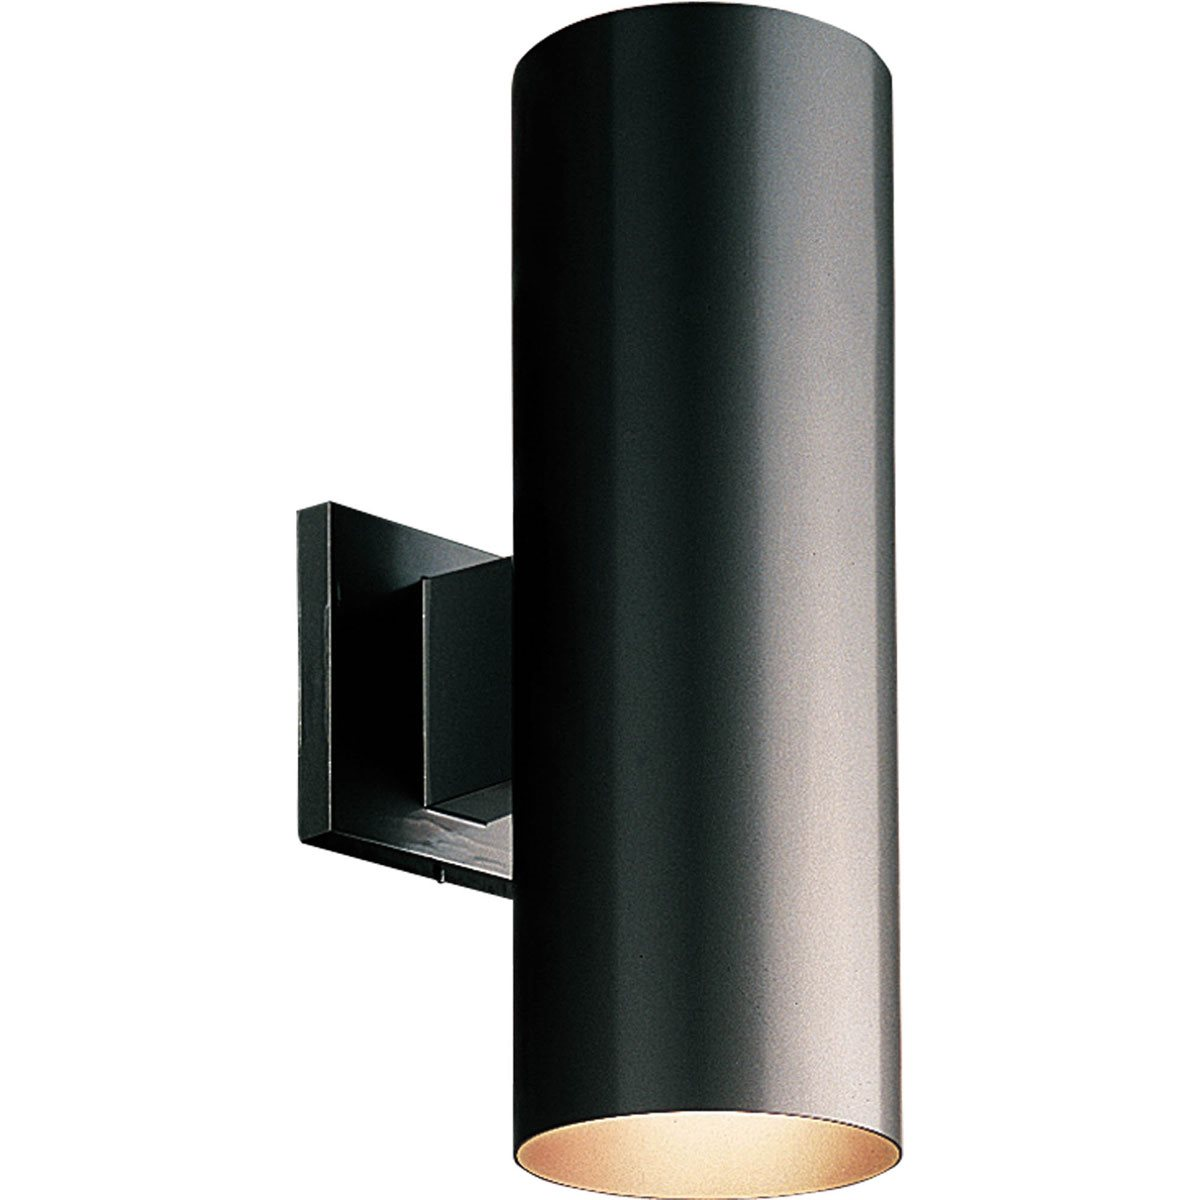 Progress lighting p5675 5 aluminum cylinder outdoor wall sconce pg p5675 for Exterior light sconce